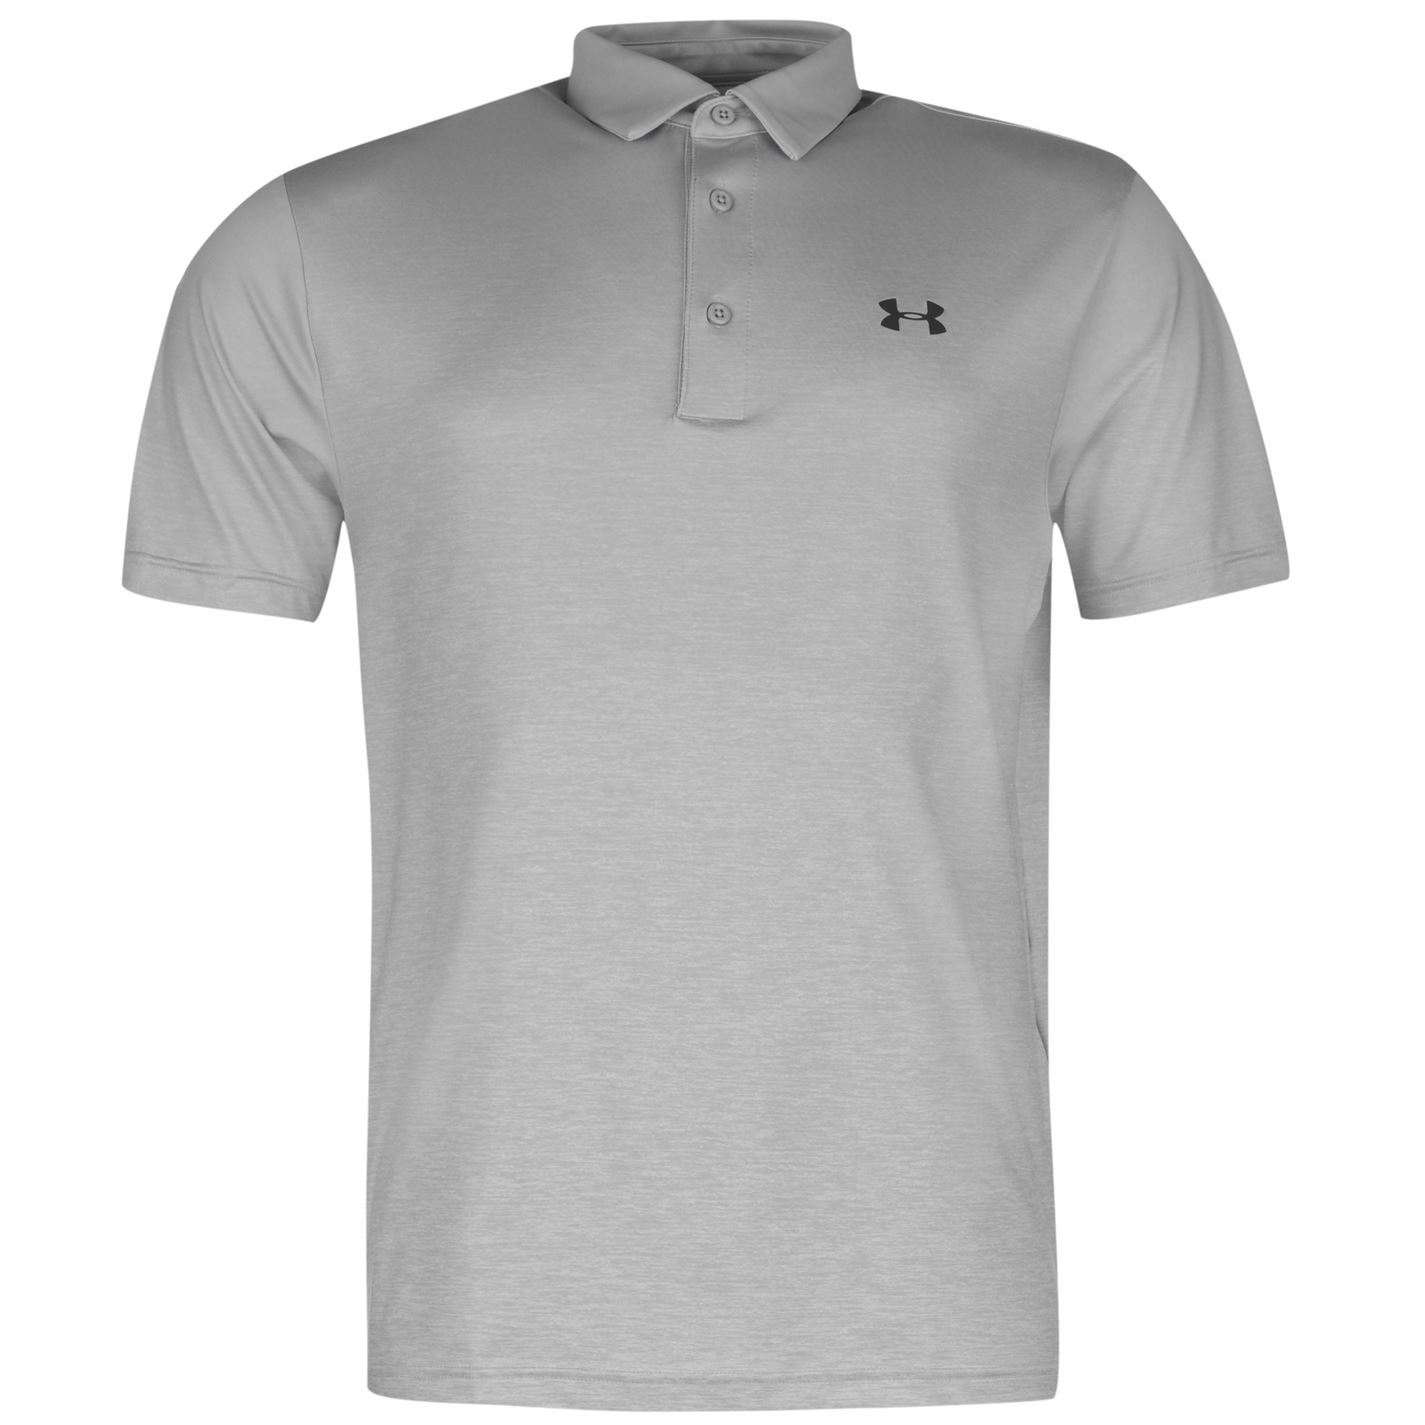 Under Armour Playoff Golf Polo Shirt Mens Grey Top T Shirt